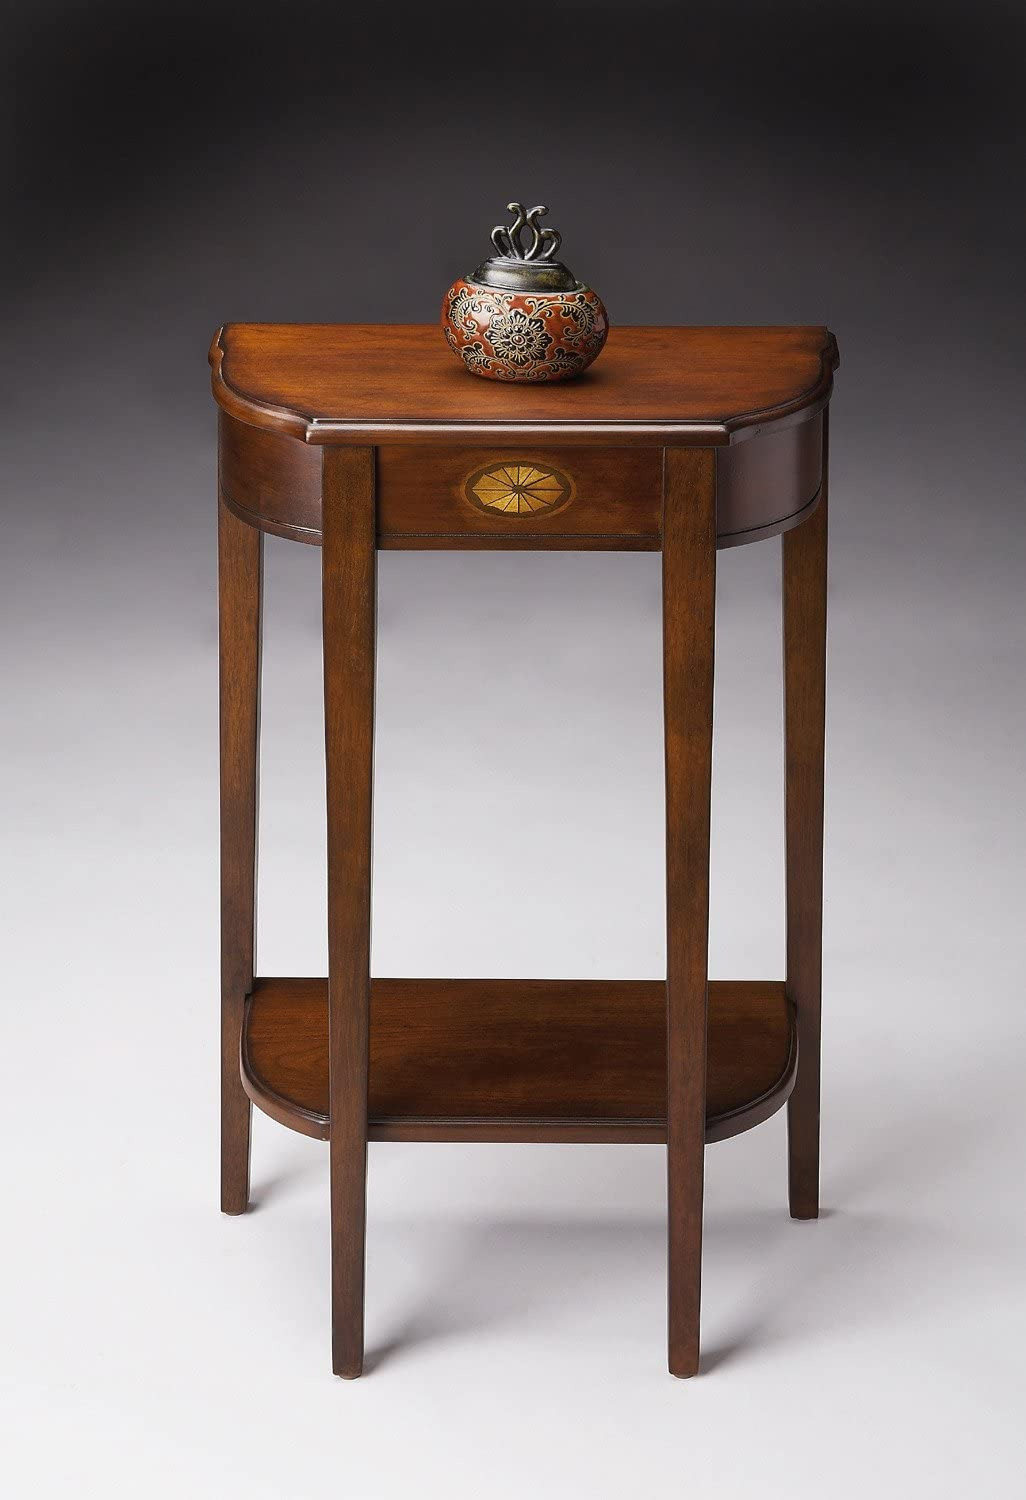 Furniture Gallery butler Lovely butler Wendell Console Table